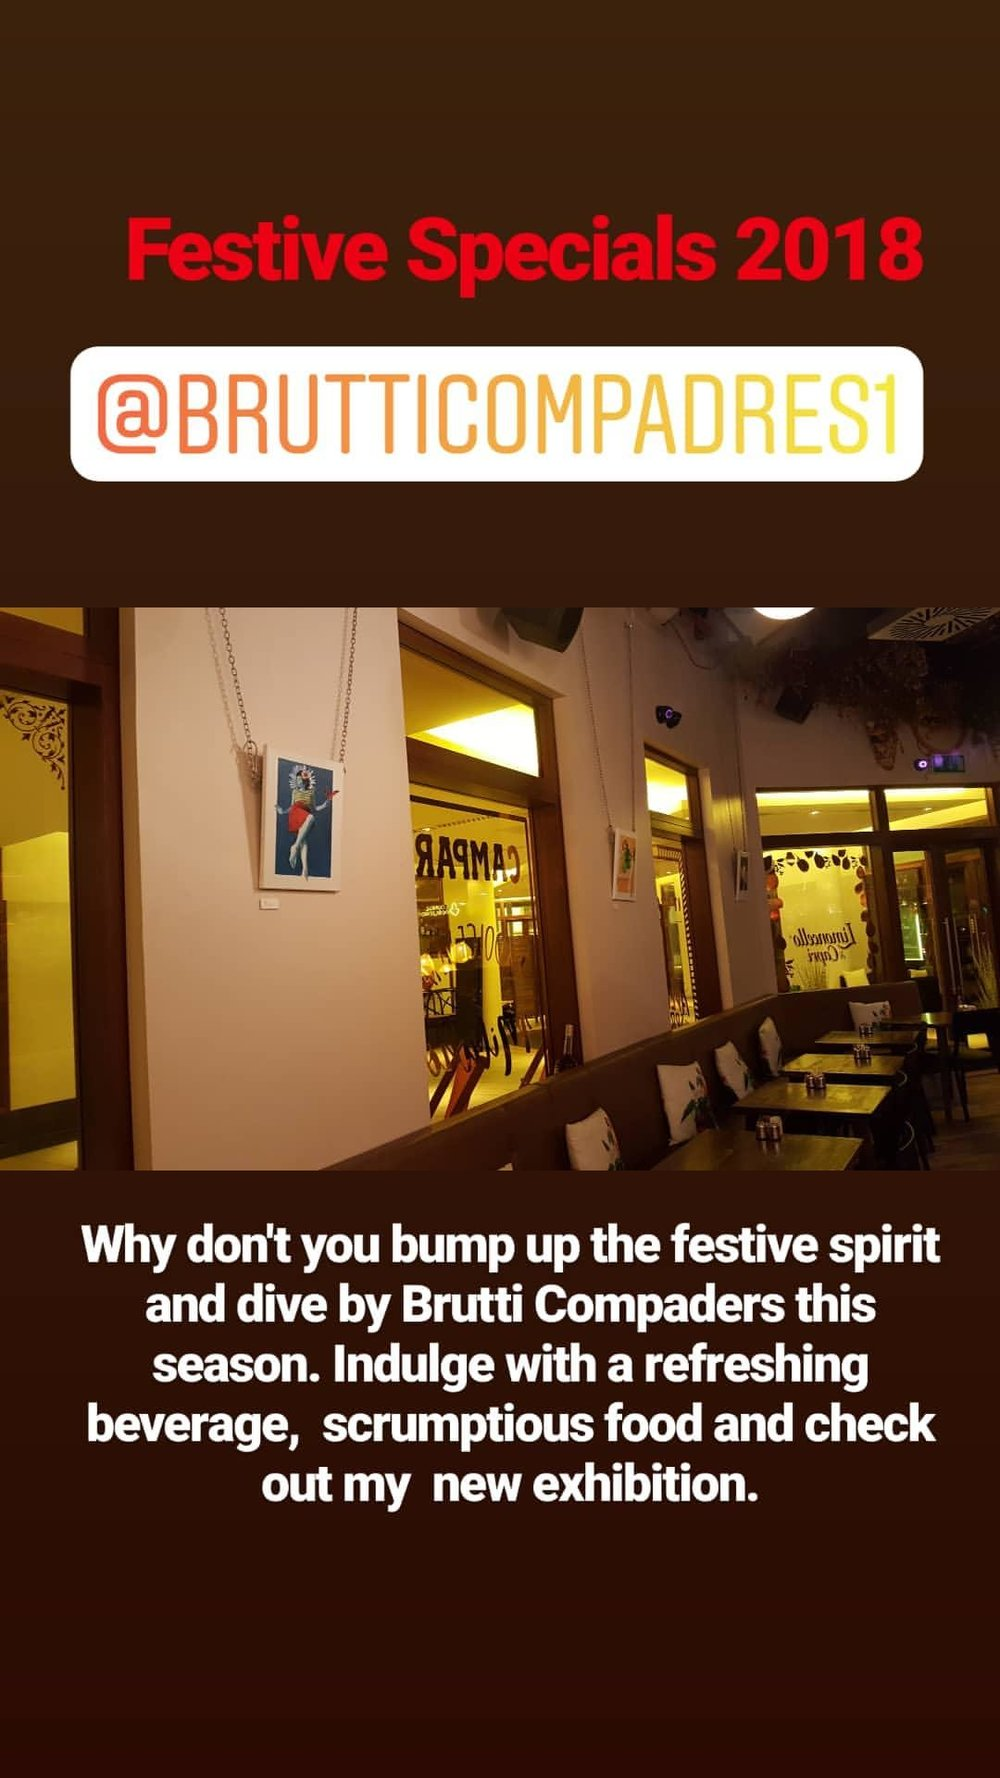 Festive Specials: Daria Zapala - This winter season a selection of my works is adorning Brutti Compadres Platos Pequenos restaurant.BRUTTI COMPADRES, 3 VIRGINIA COURT, GLASGOW | 0141 552 1777 | BRUTTICOMPADRES@HOTMAIL.COM